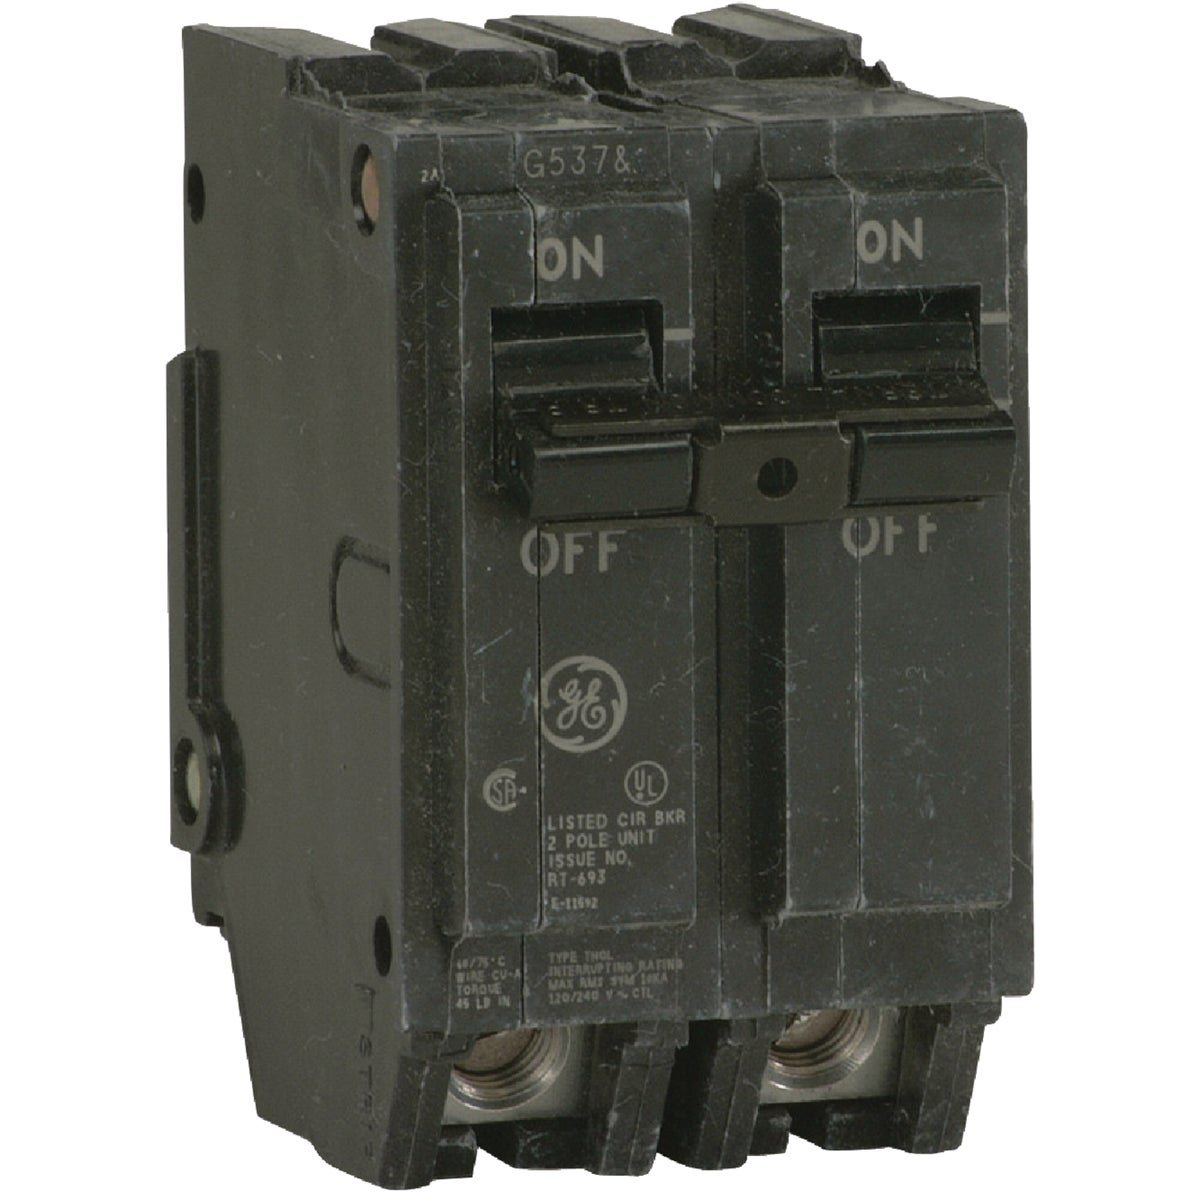 30A 2P CIRCUIT BREAKER - THQL2130 by G E Industrial